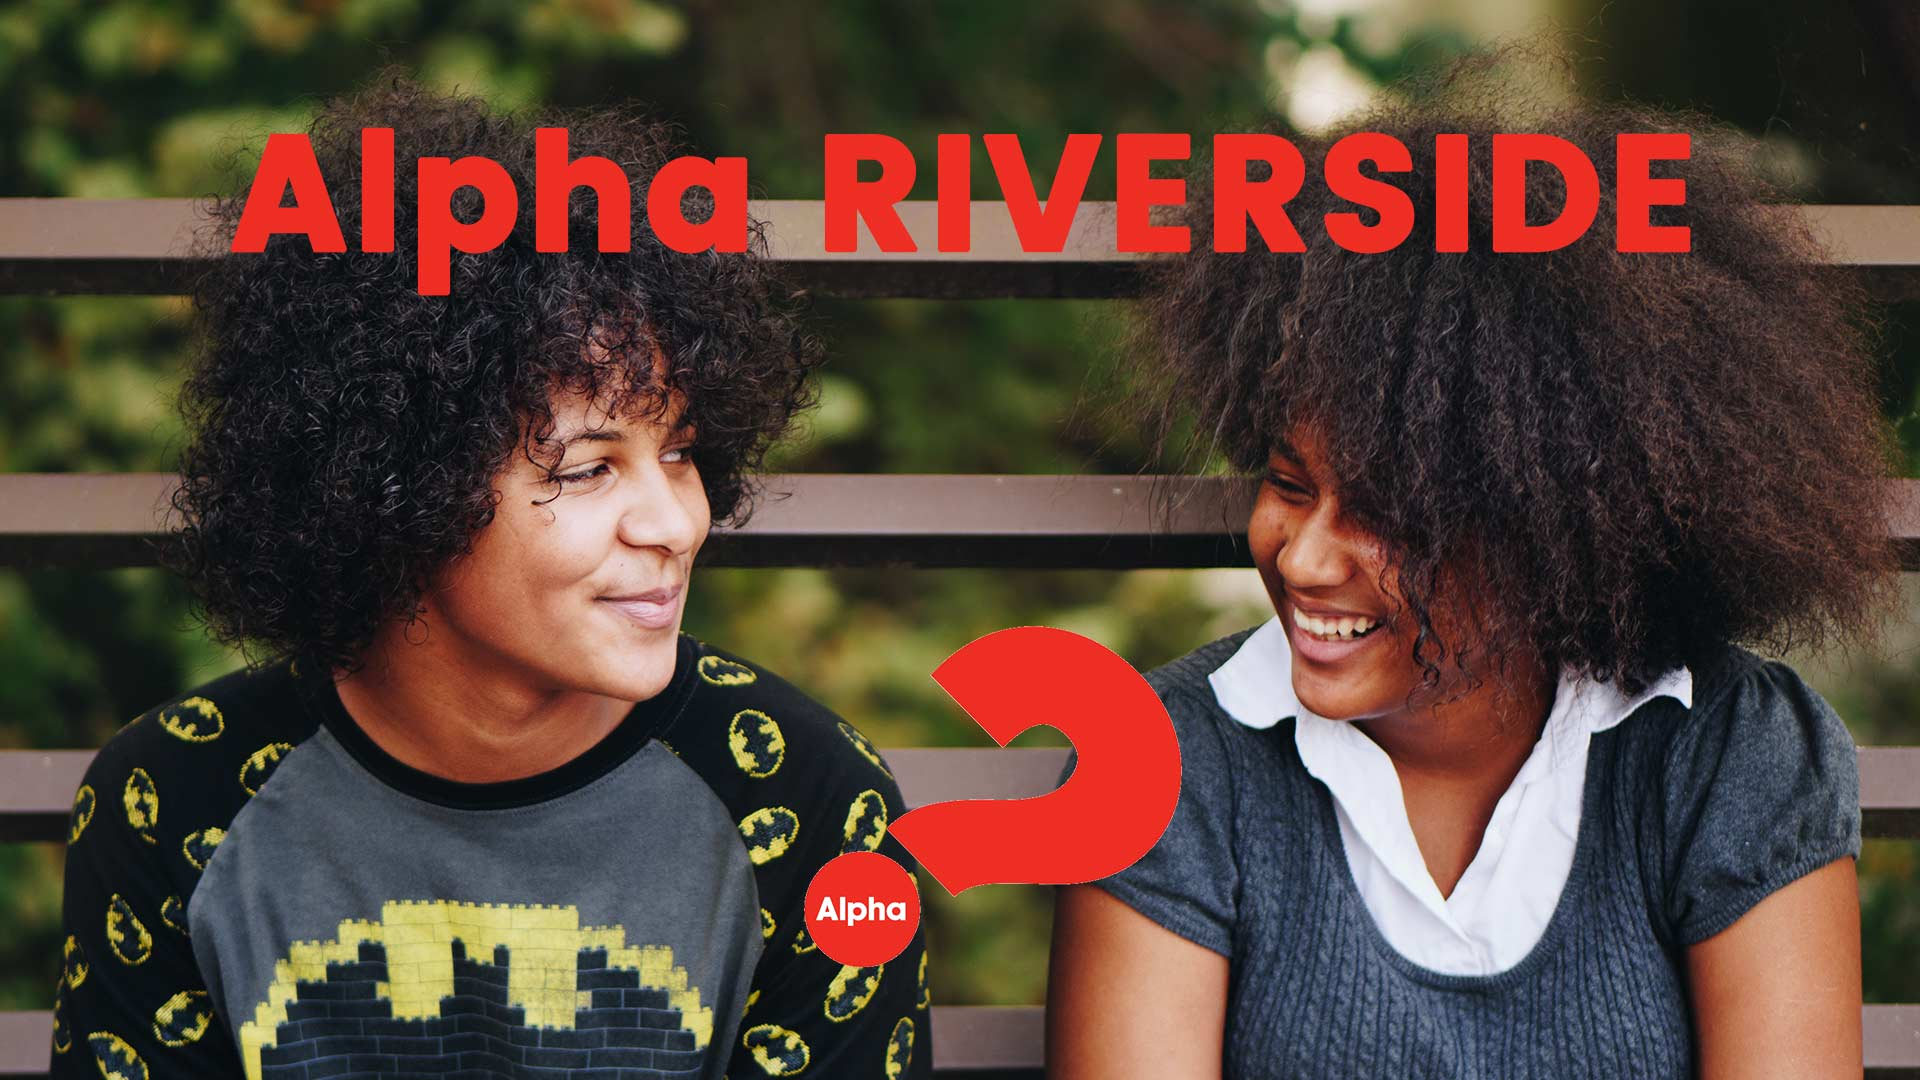 alpha-riverside.jpg